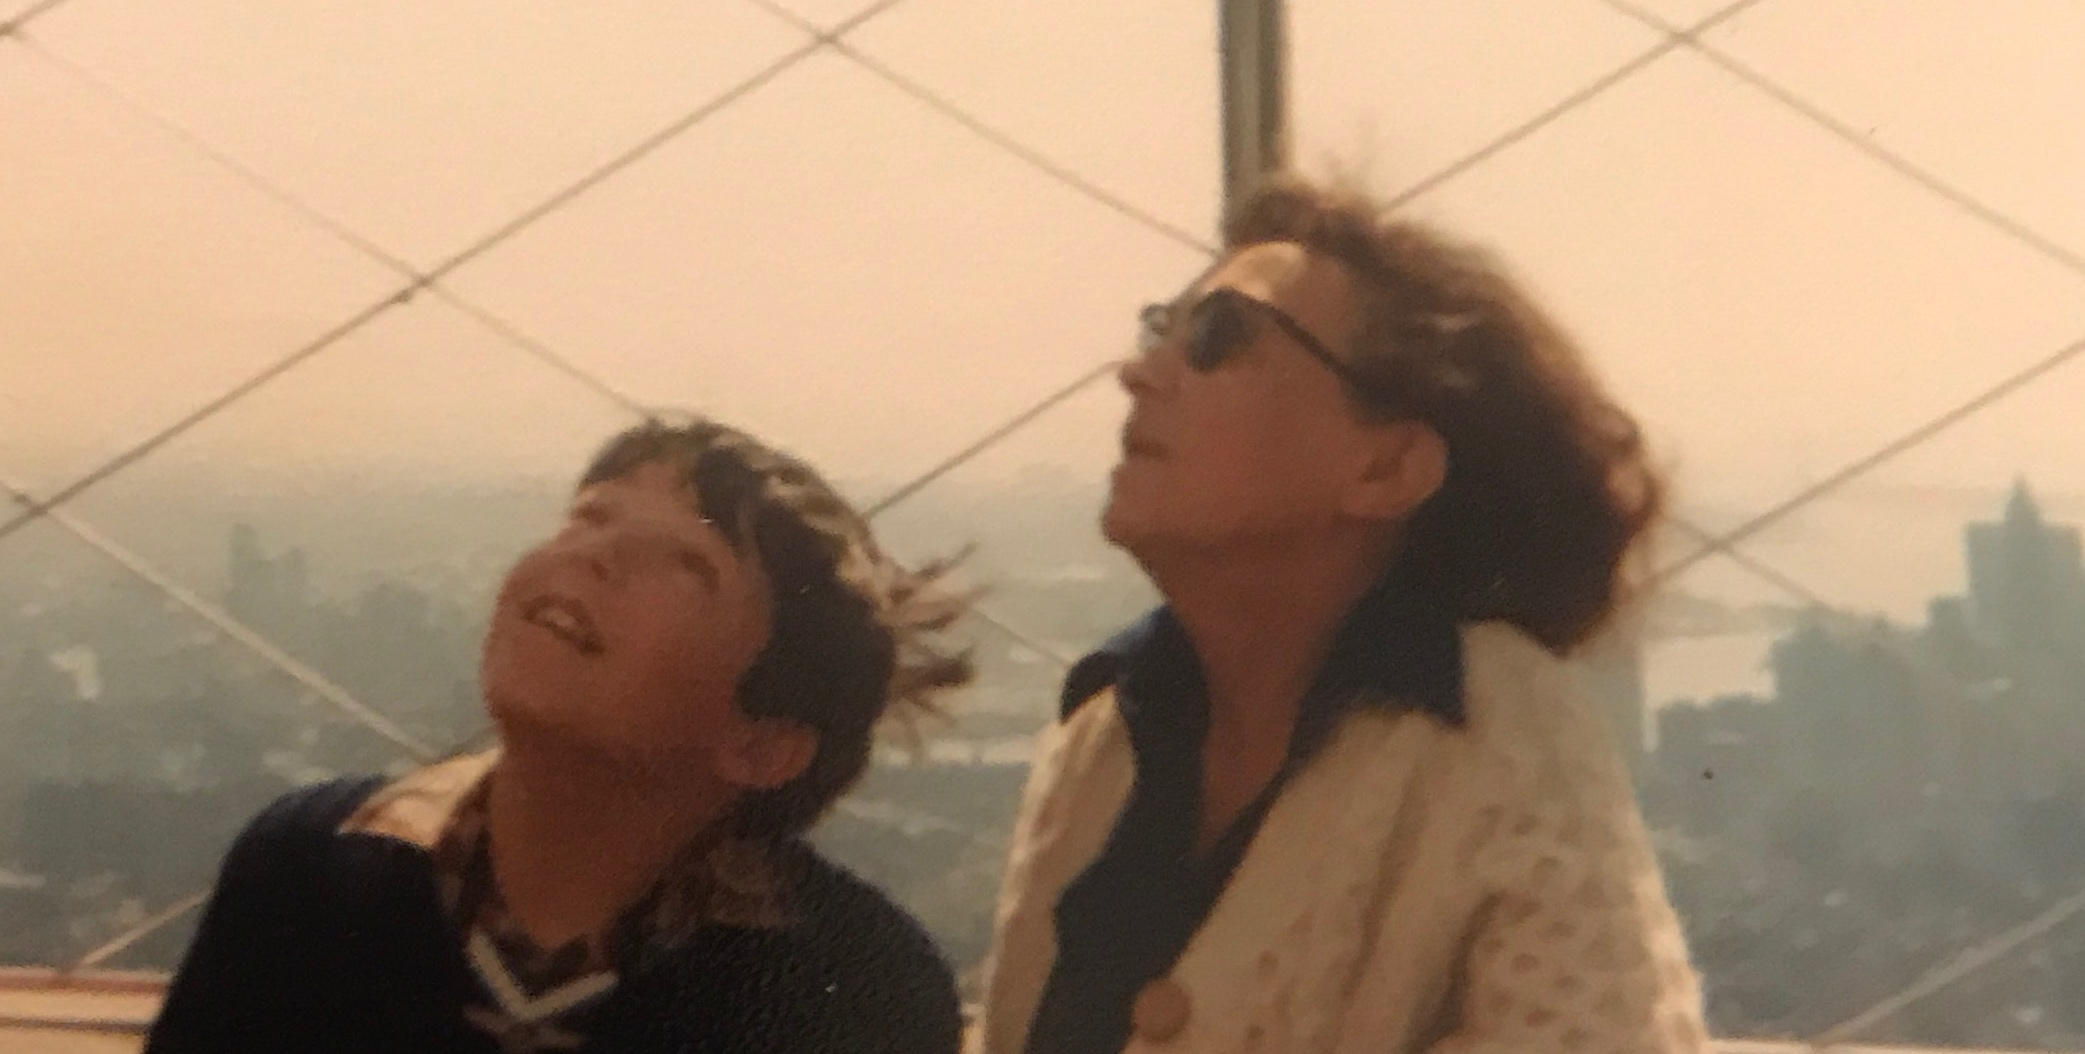 Gran and me at the top of an American icon during our American adventure.